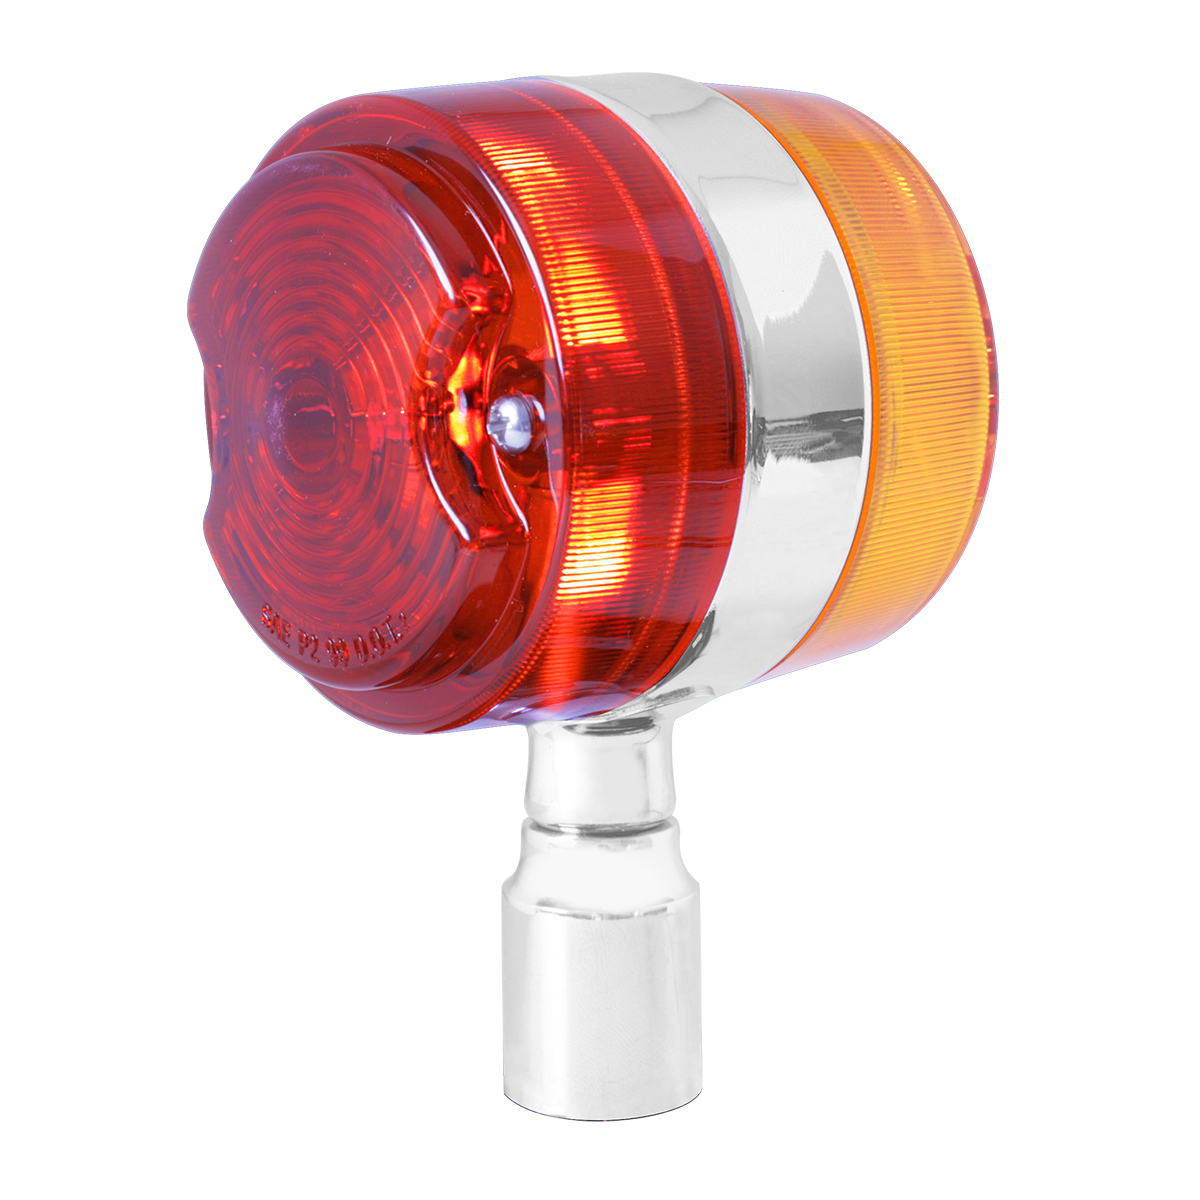 #94672 Chrome Plated Double Face Marker Light w/out Stainless Steel Rim - Projected Style Lens